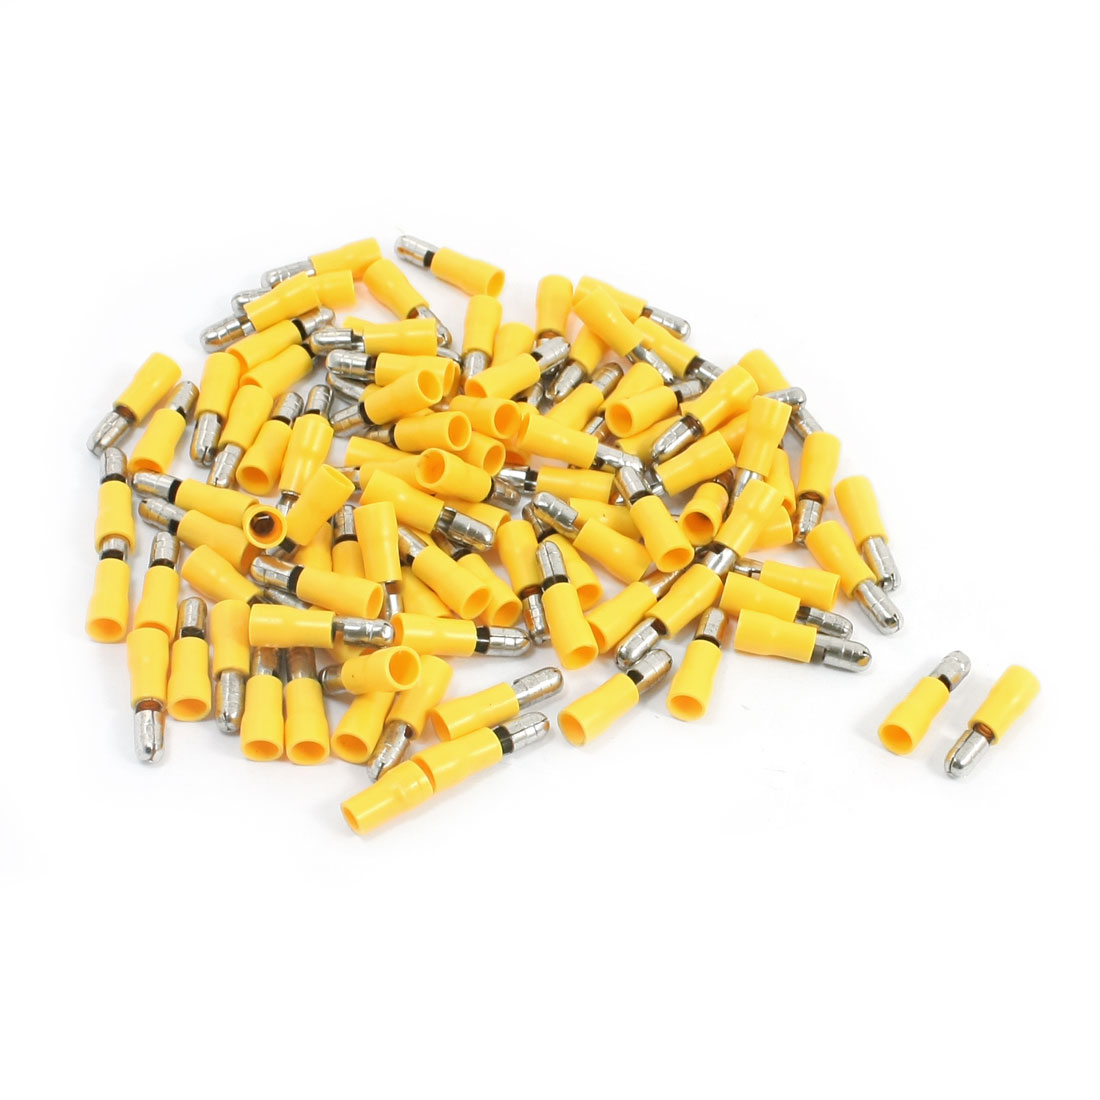 100Pcs 12-10AWG MPD5-195 Yellow PVC Sleeve Insulated 5mm Cable Terminals Crimp